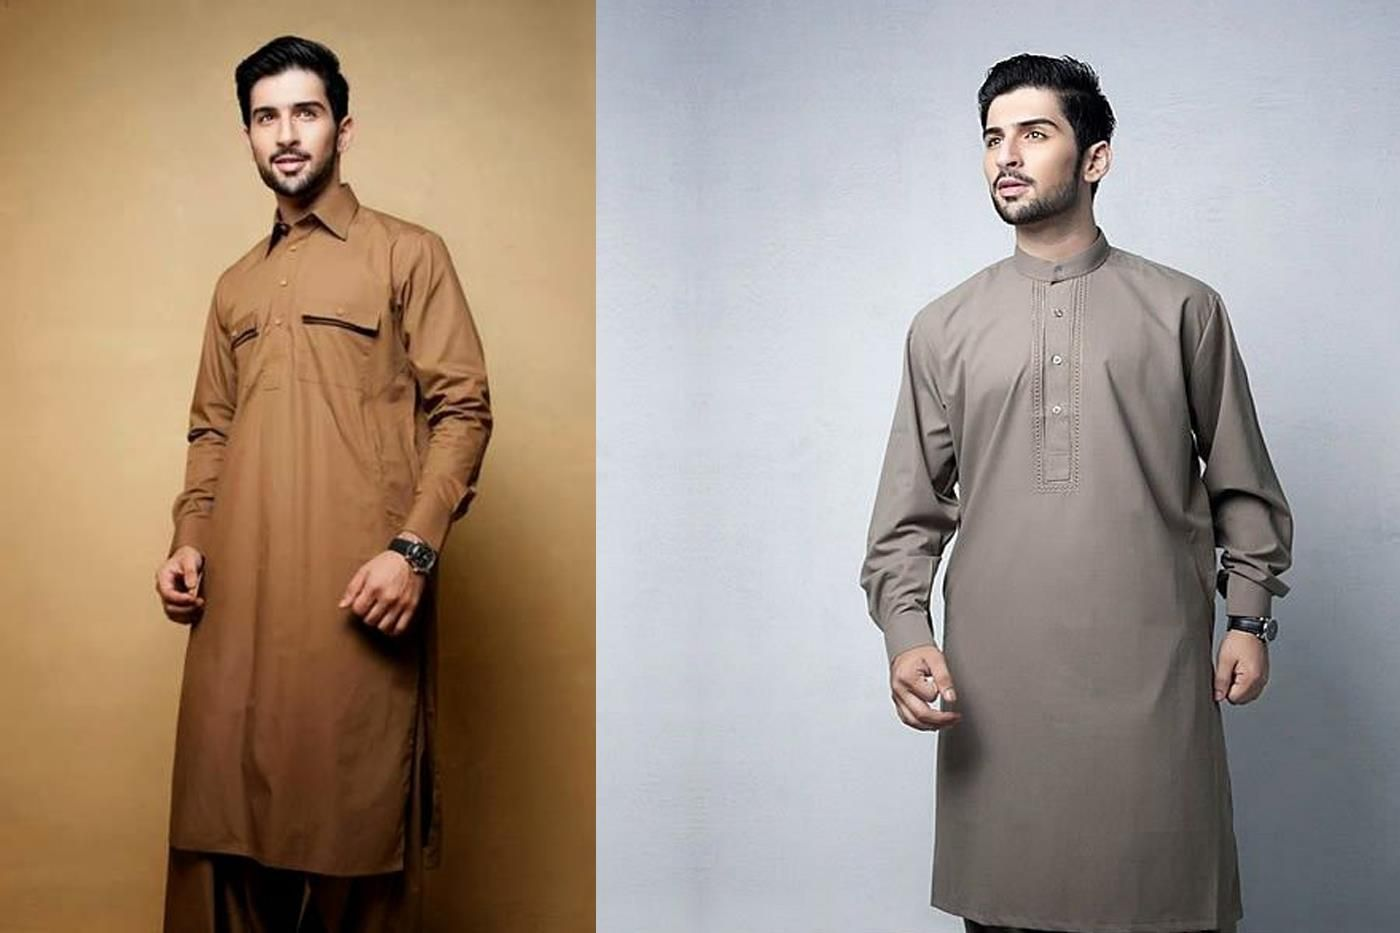 Aijaz Aslam Men S Clothing Brands In Pakistan In 2020 Mens Clothing Brands Best Clothing Brands Clothing Brand